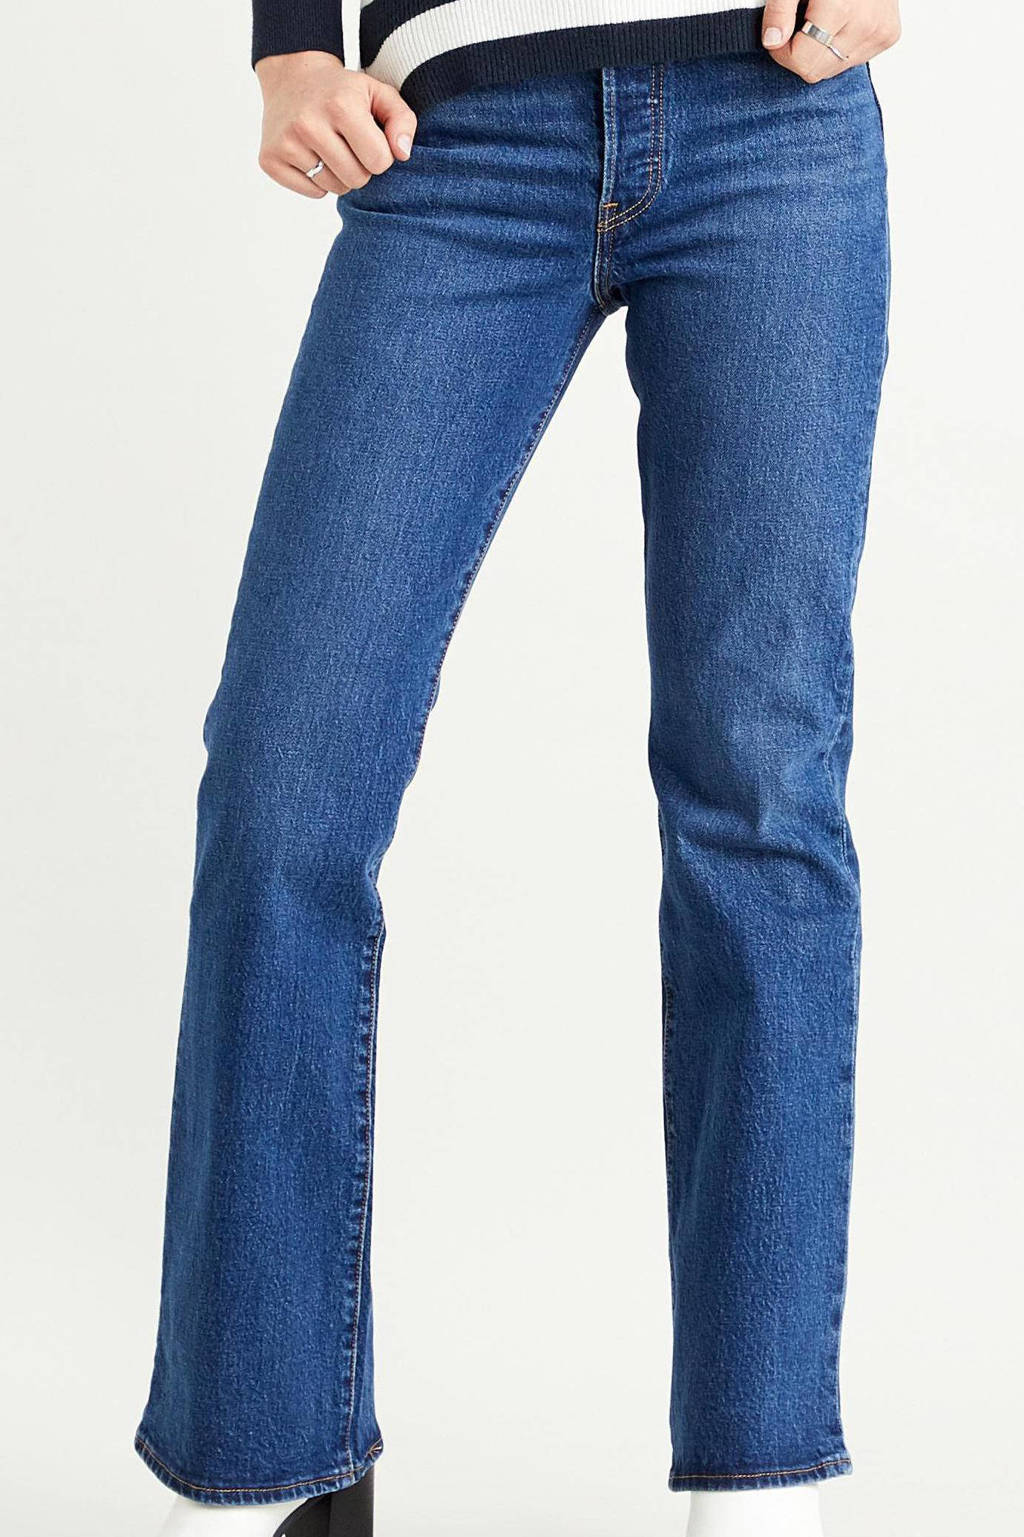 Levi's Ribcage high waist bootcut jeans turn up, TURN UP